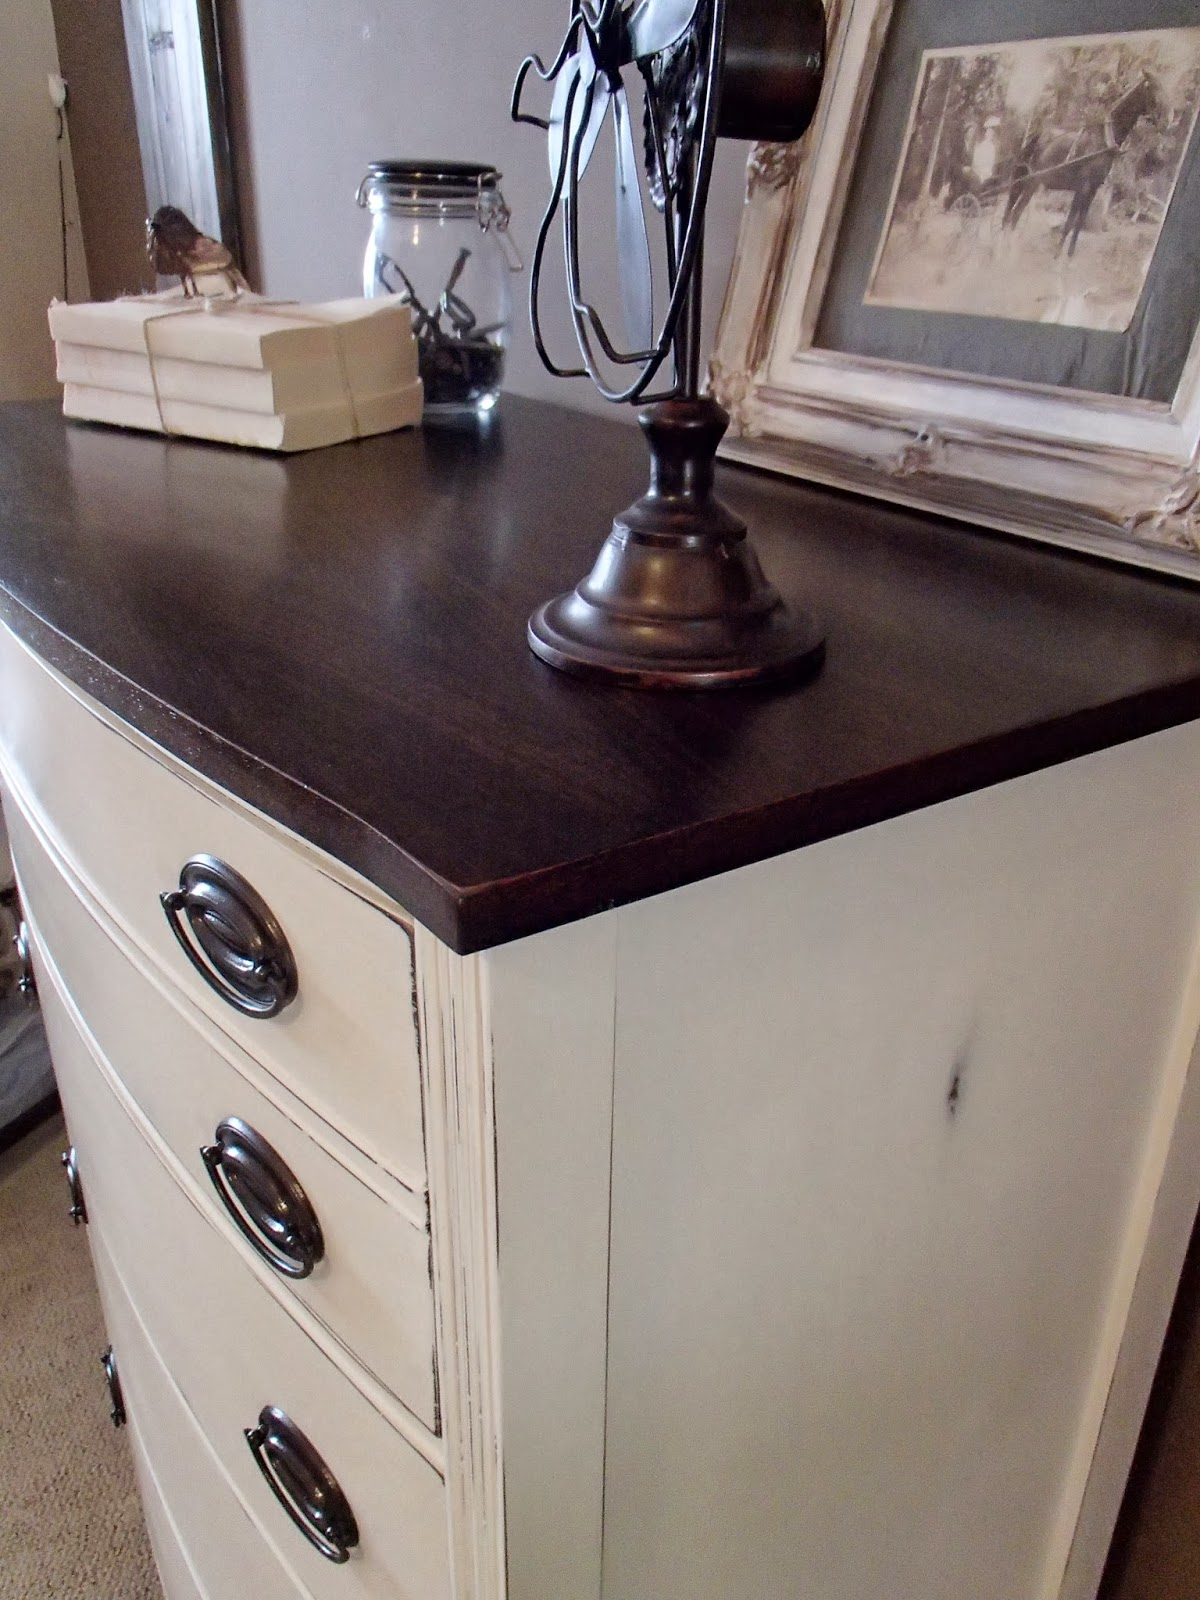 I Painted The Original Hardware In Oil Rubbed Bronze And Tried Jacobean Stain On Tops This Time Its Just Slightly Darker Than Dark Walnut